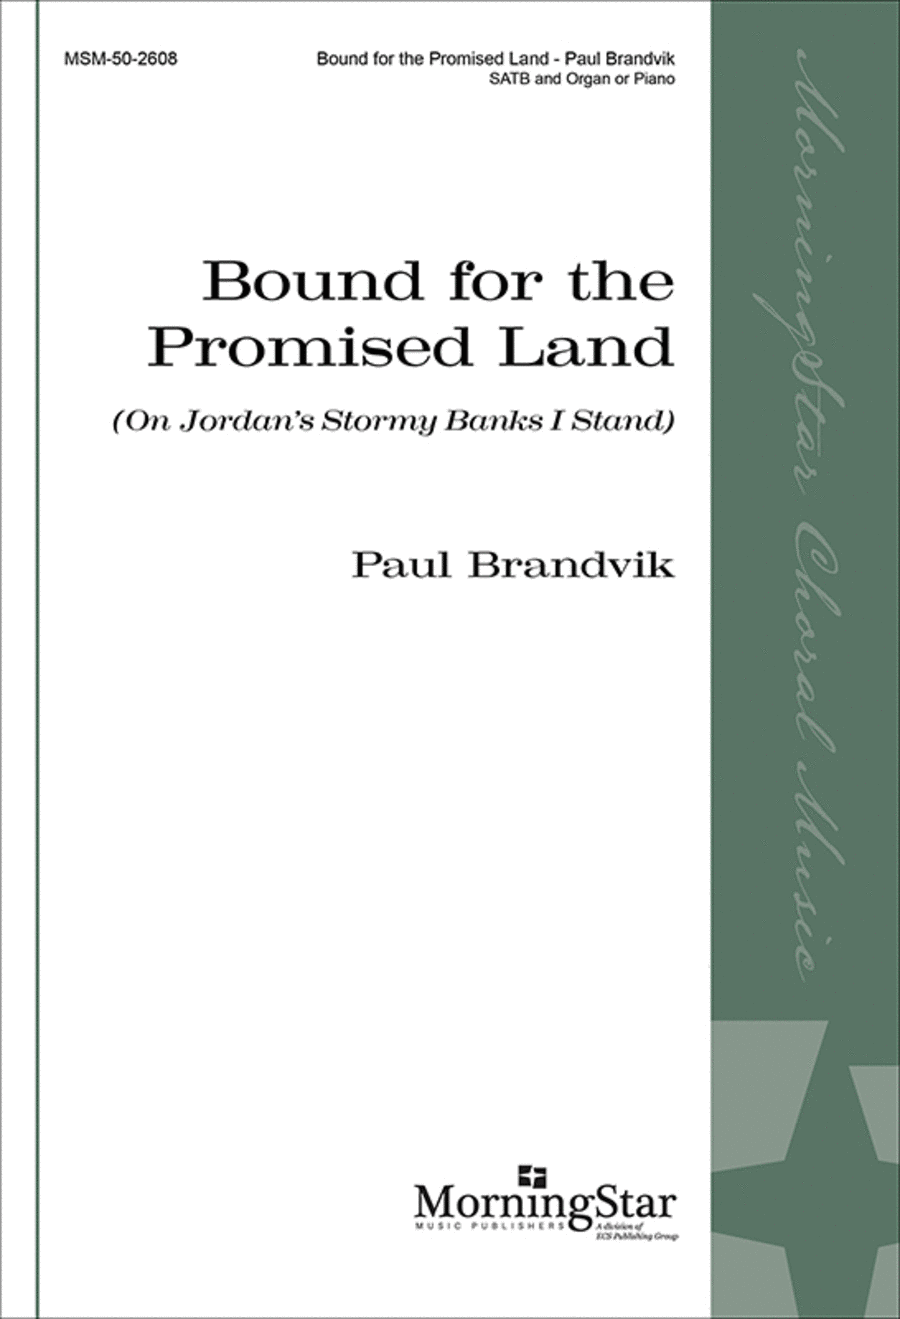 Bound for the Promised Land: On Jordan's Stormy Banks I Stand